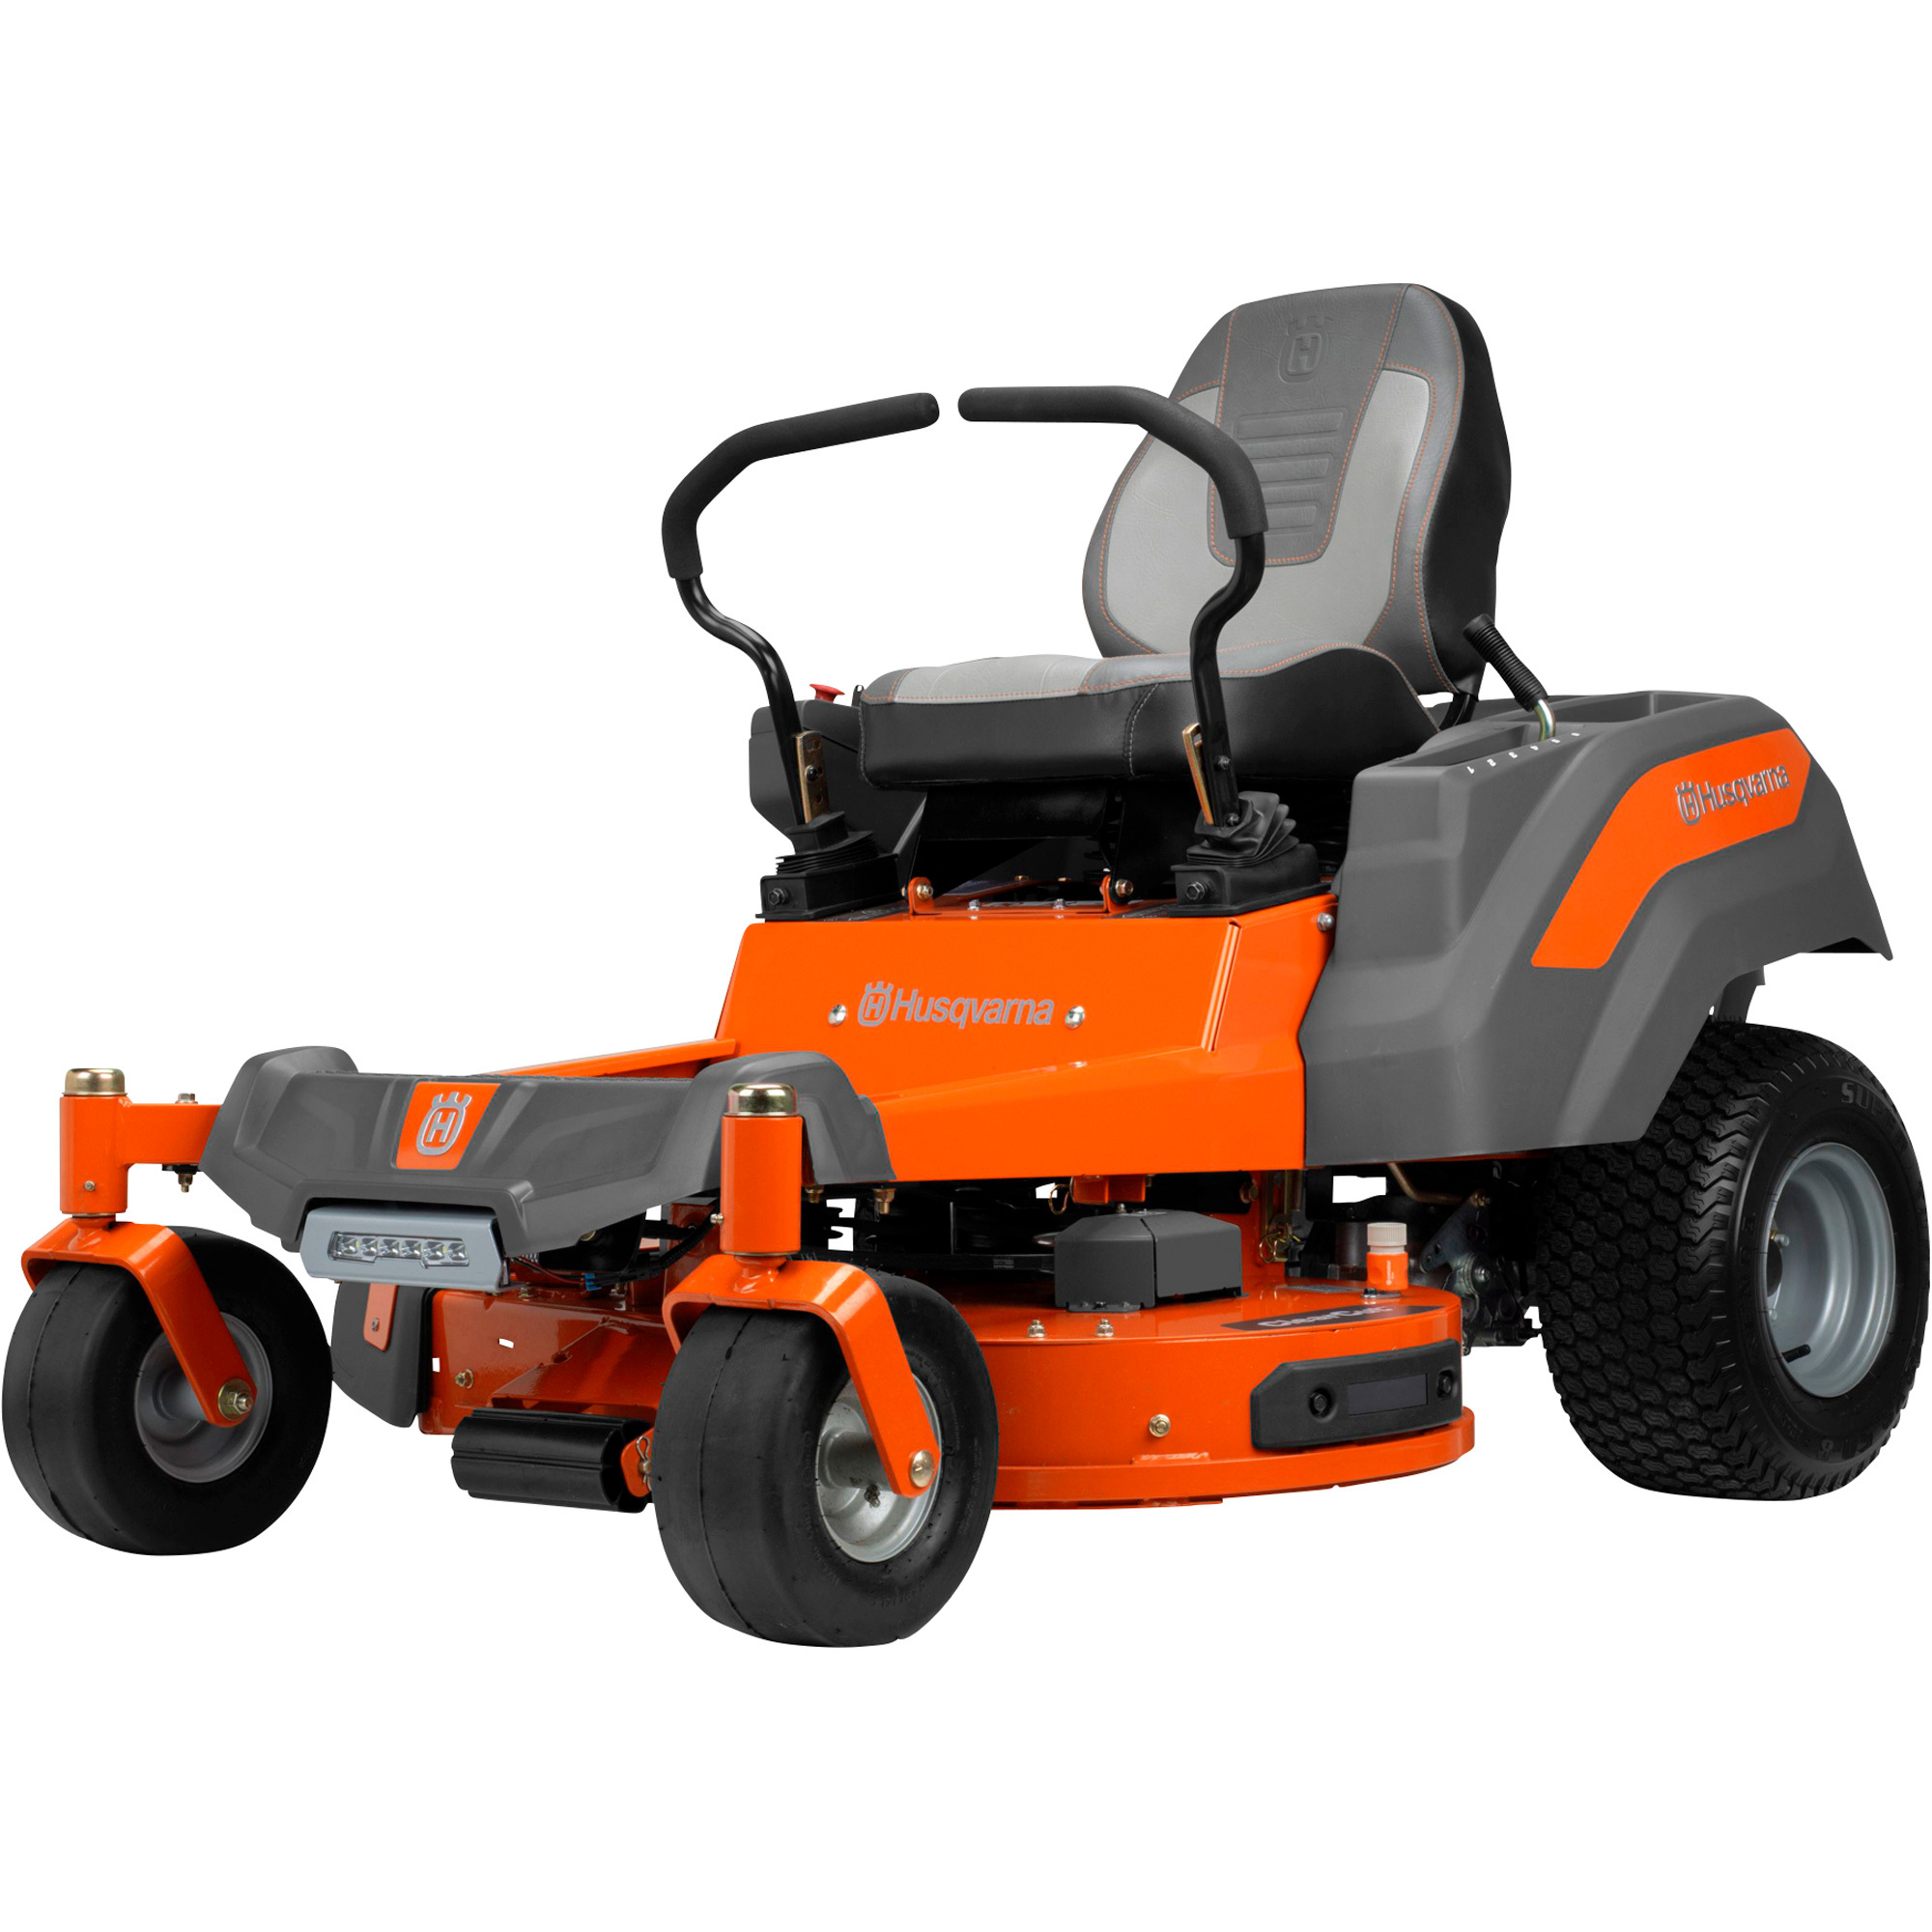 Husqvarna Z200 Series ReadyStart Zero-Turn Mower — 23 HP, 726cc Kawasaki  FR691V Engine with Ready Start, 54in  Cutting Deck, Model# Z254F